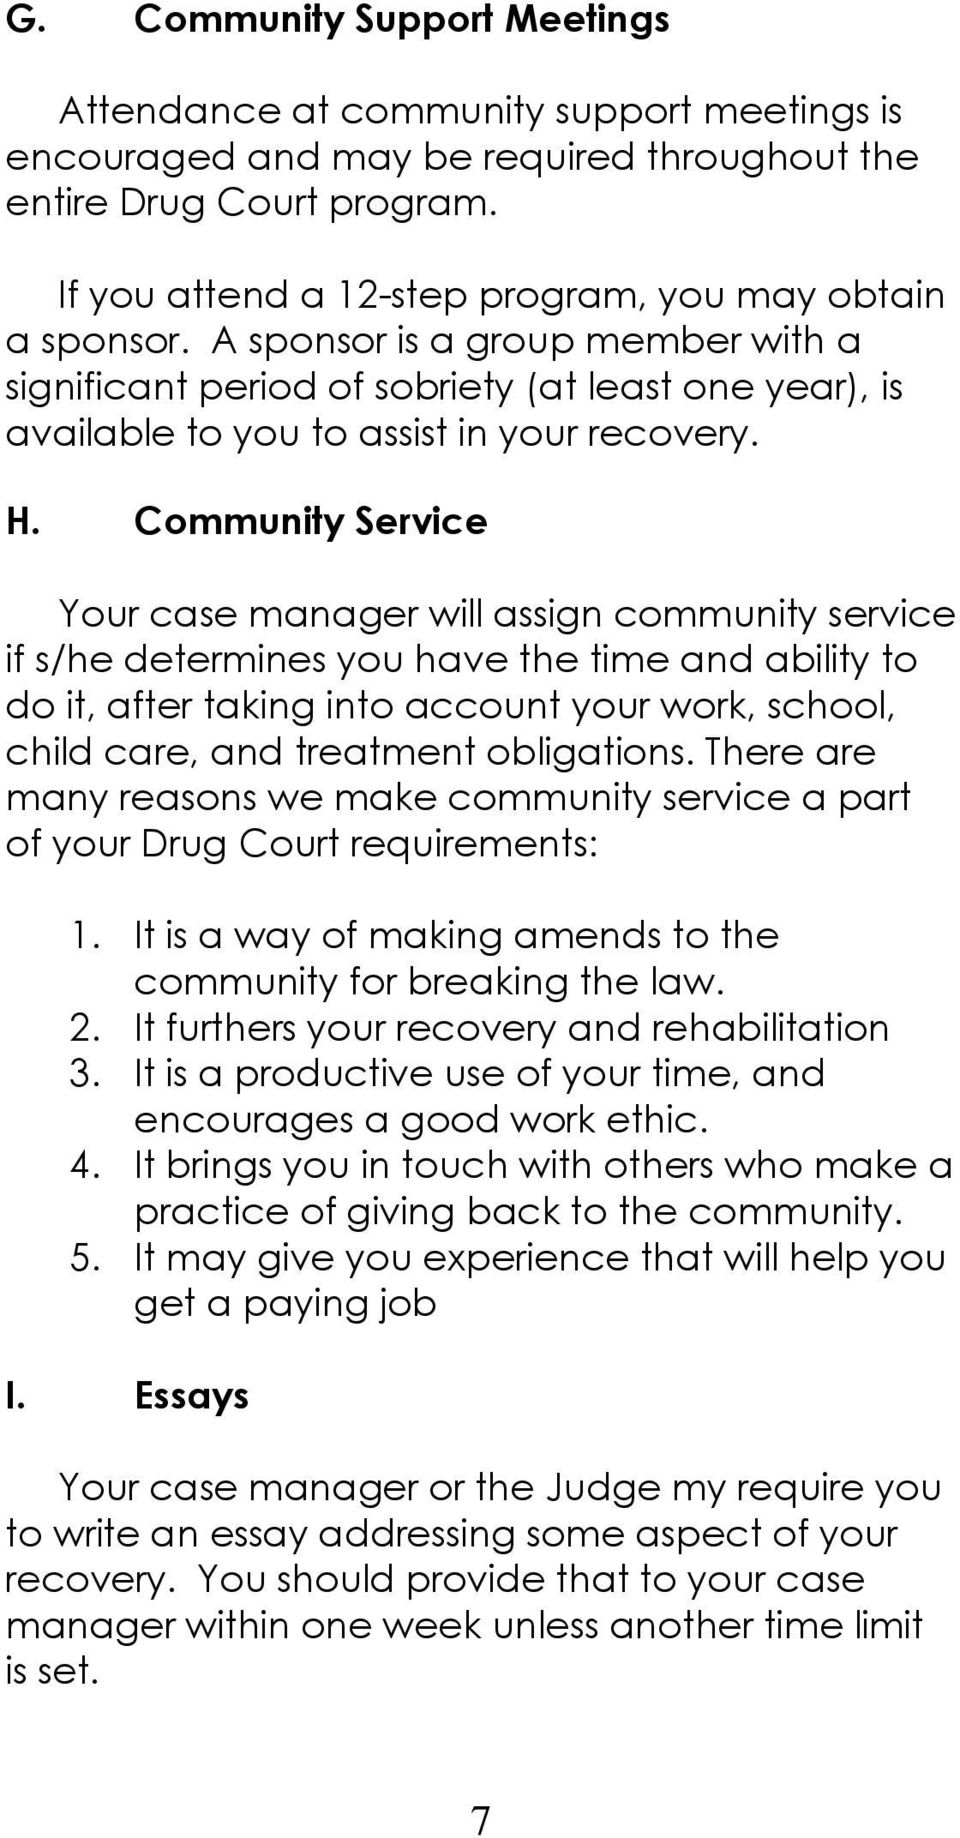 Cmmunity Service Yur case manager will assign cmmunity service if s/he determines yu have the time and ability t d it, after taking int accunt yur wrk, schl, child care, and treatment bligatins.